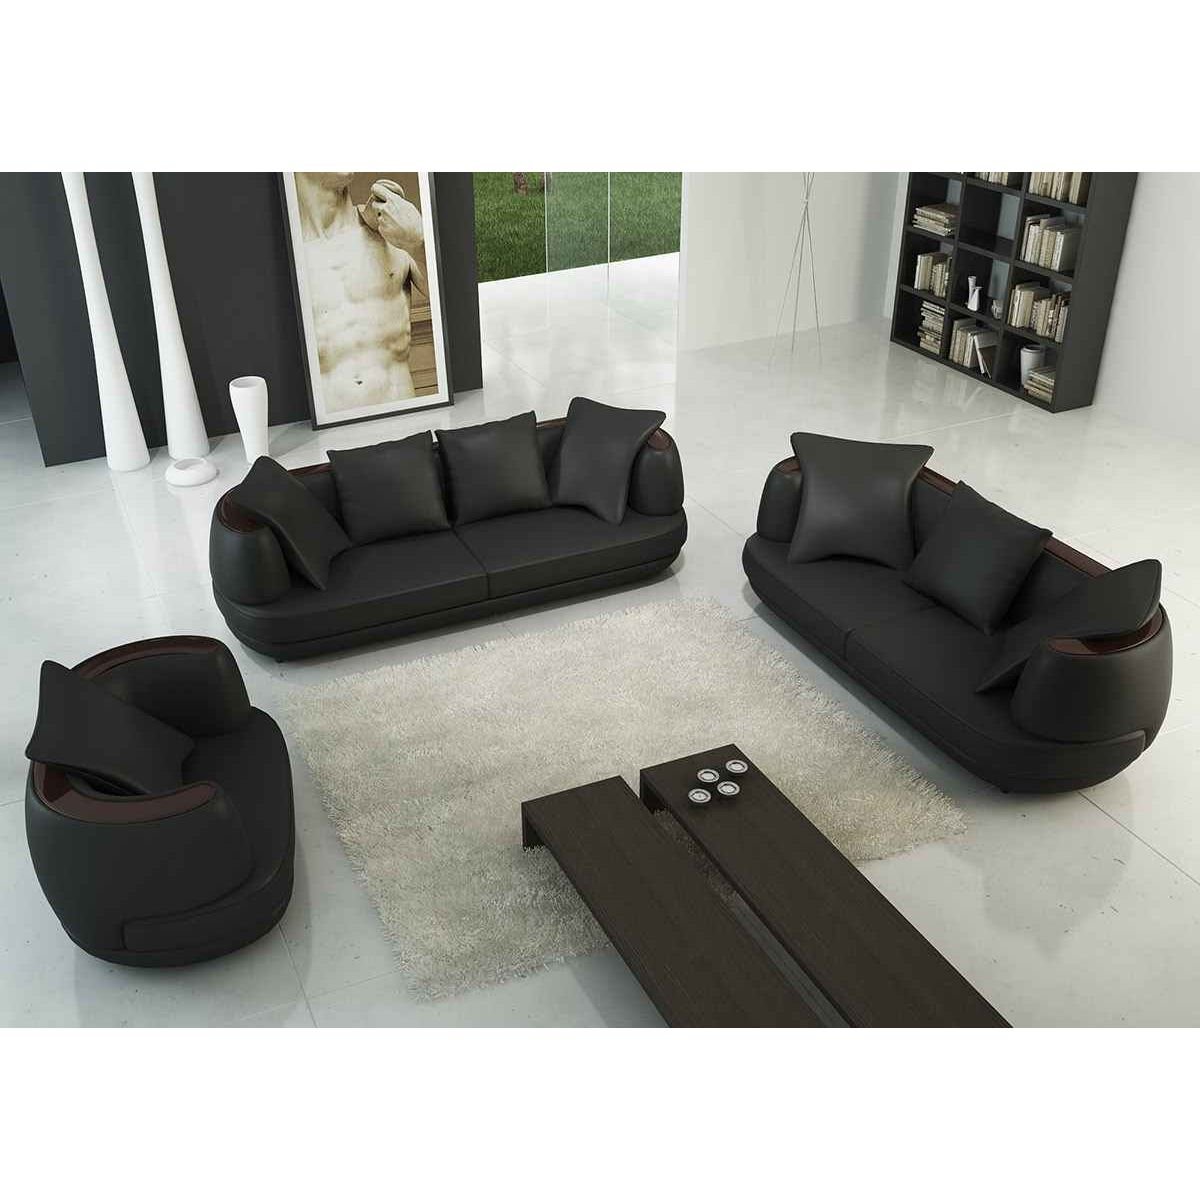 Deco in paris ensemble canape 3 2 1 places noir en cuir for Canape 2 places design